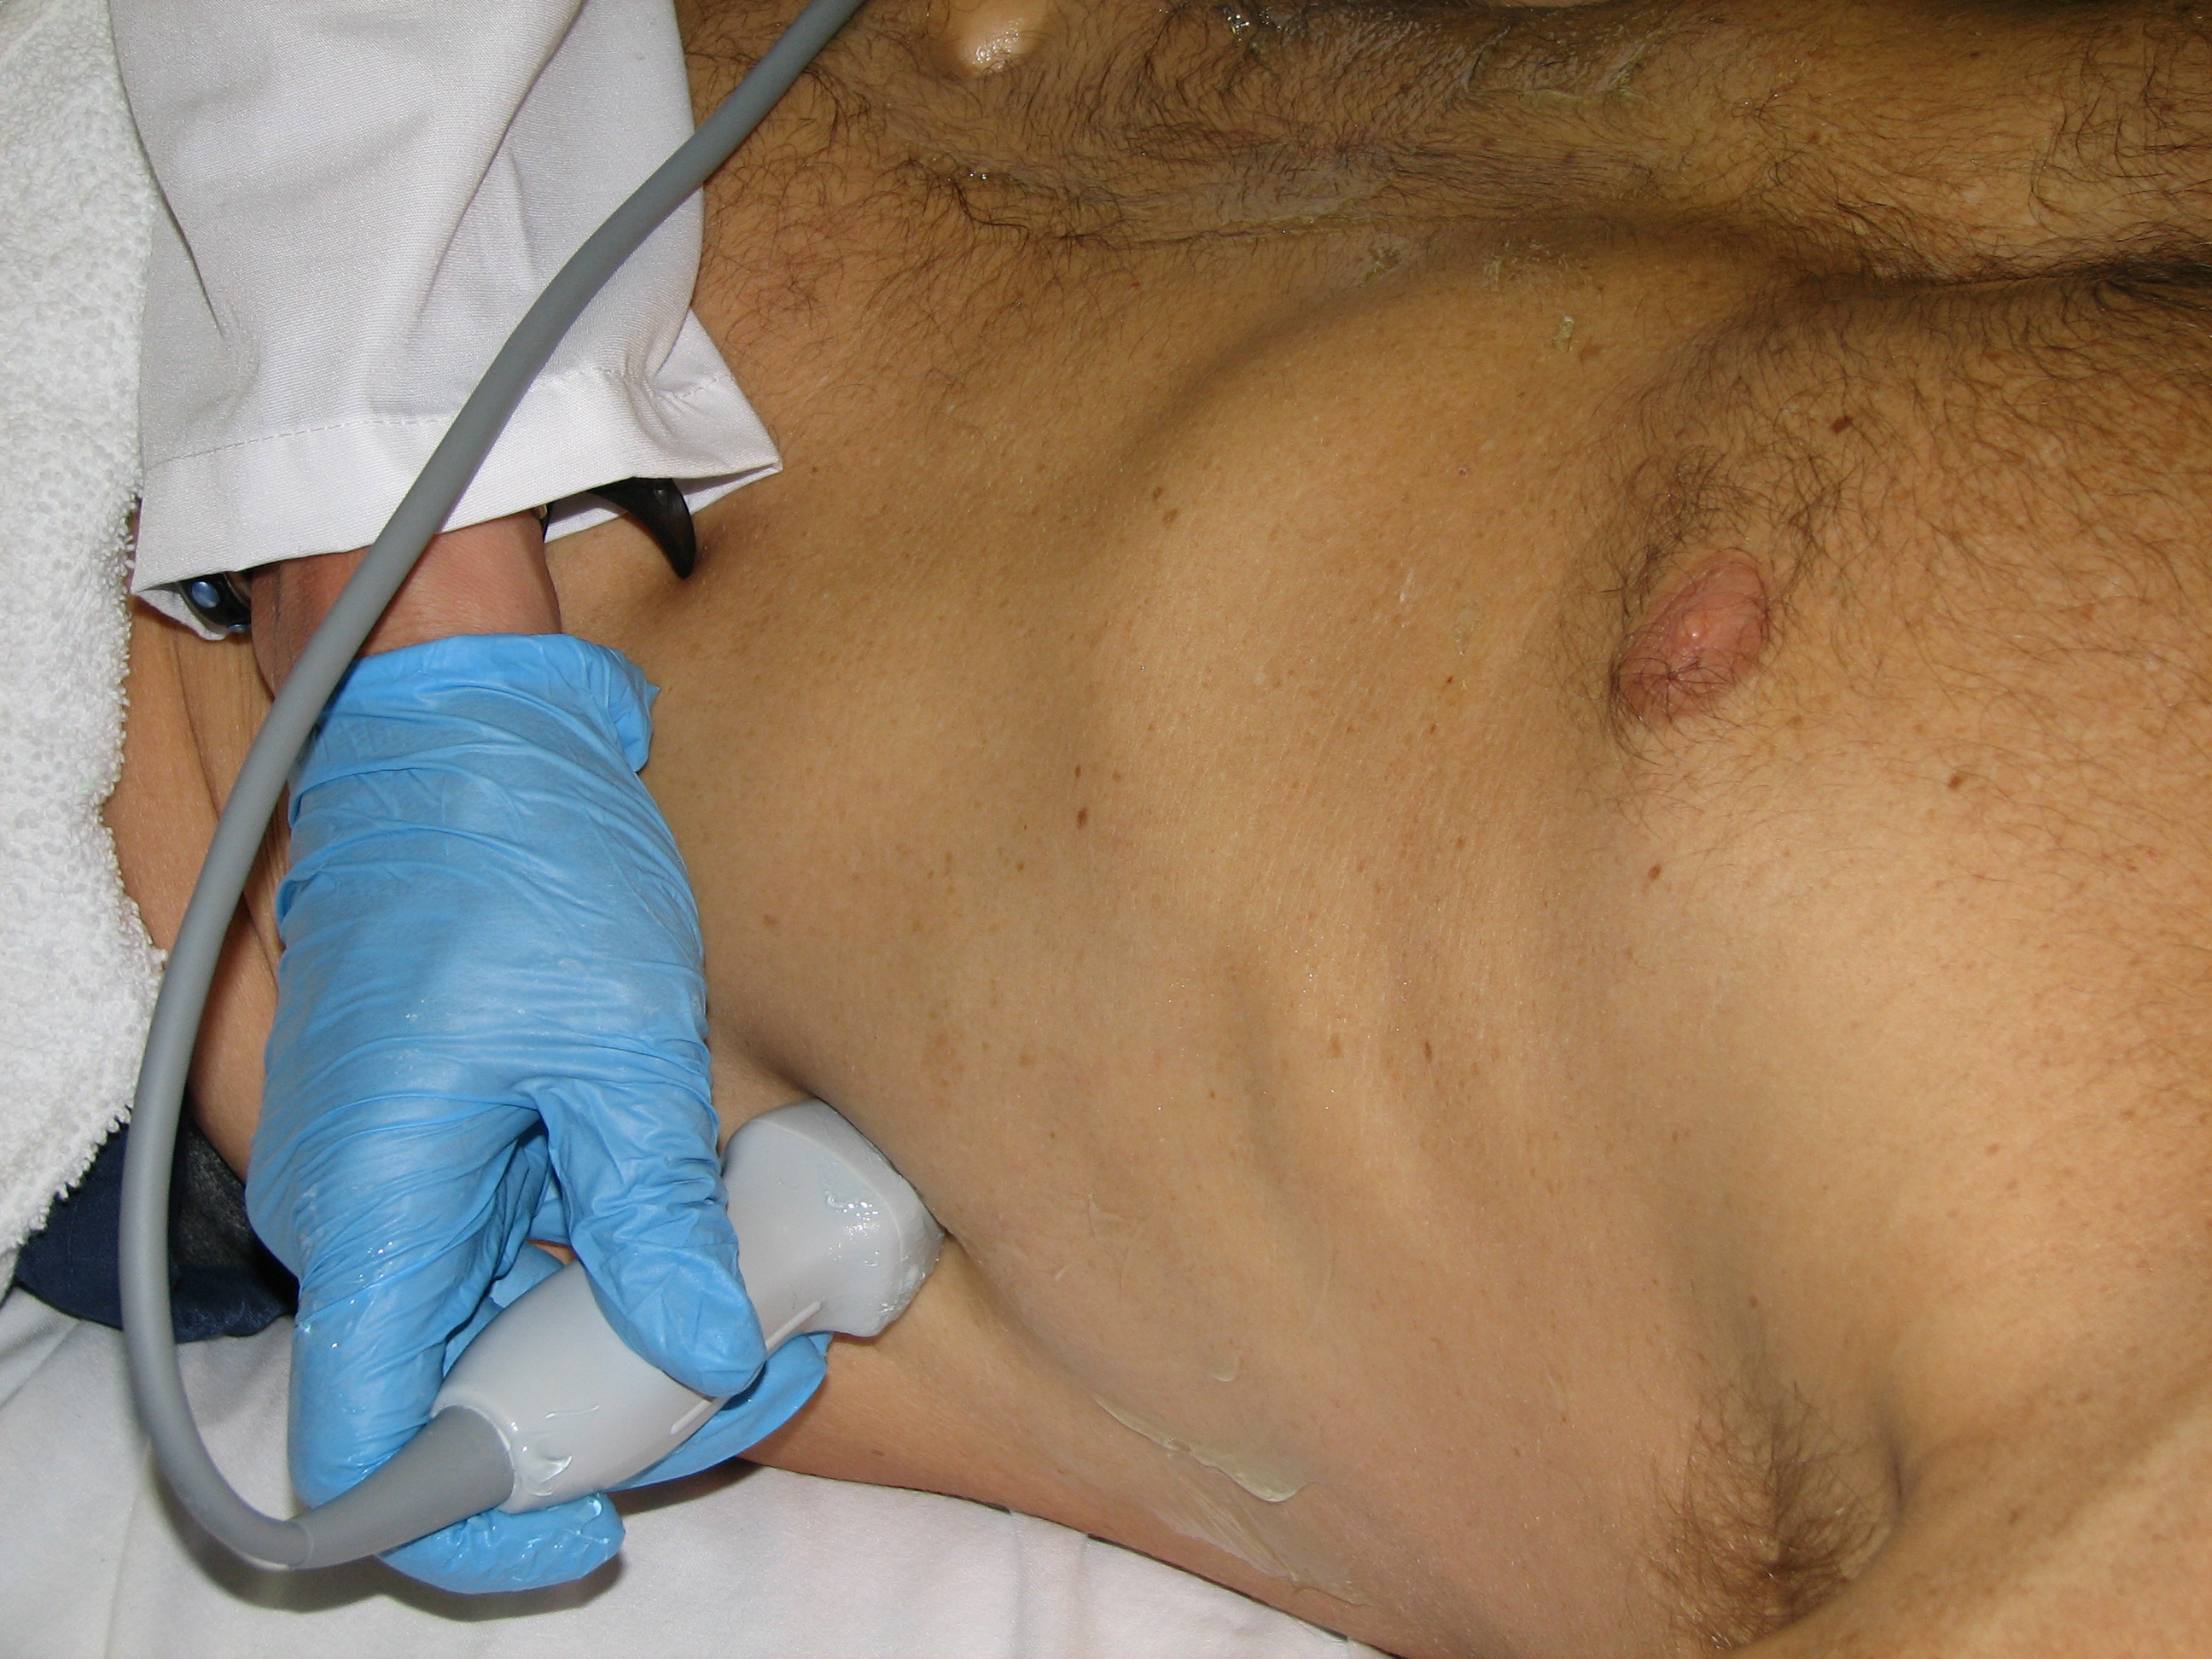 Sonostudy Lung Ultrasound By Blaivas Yup There Is A